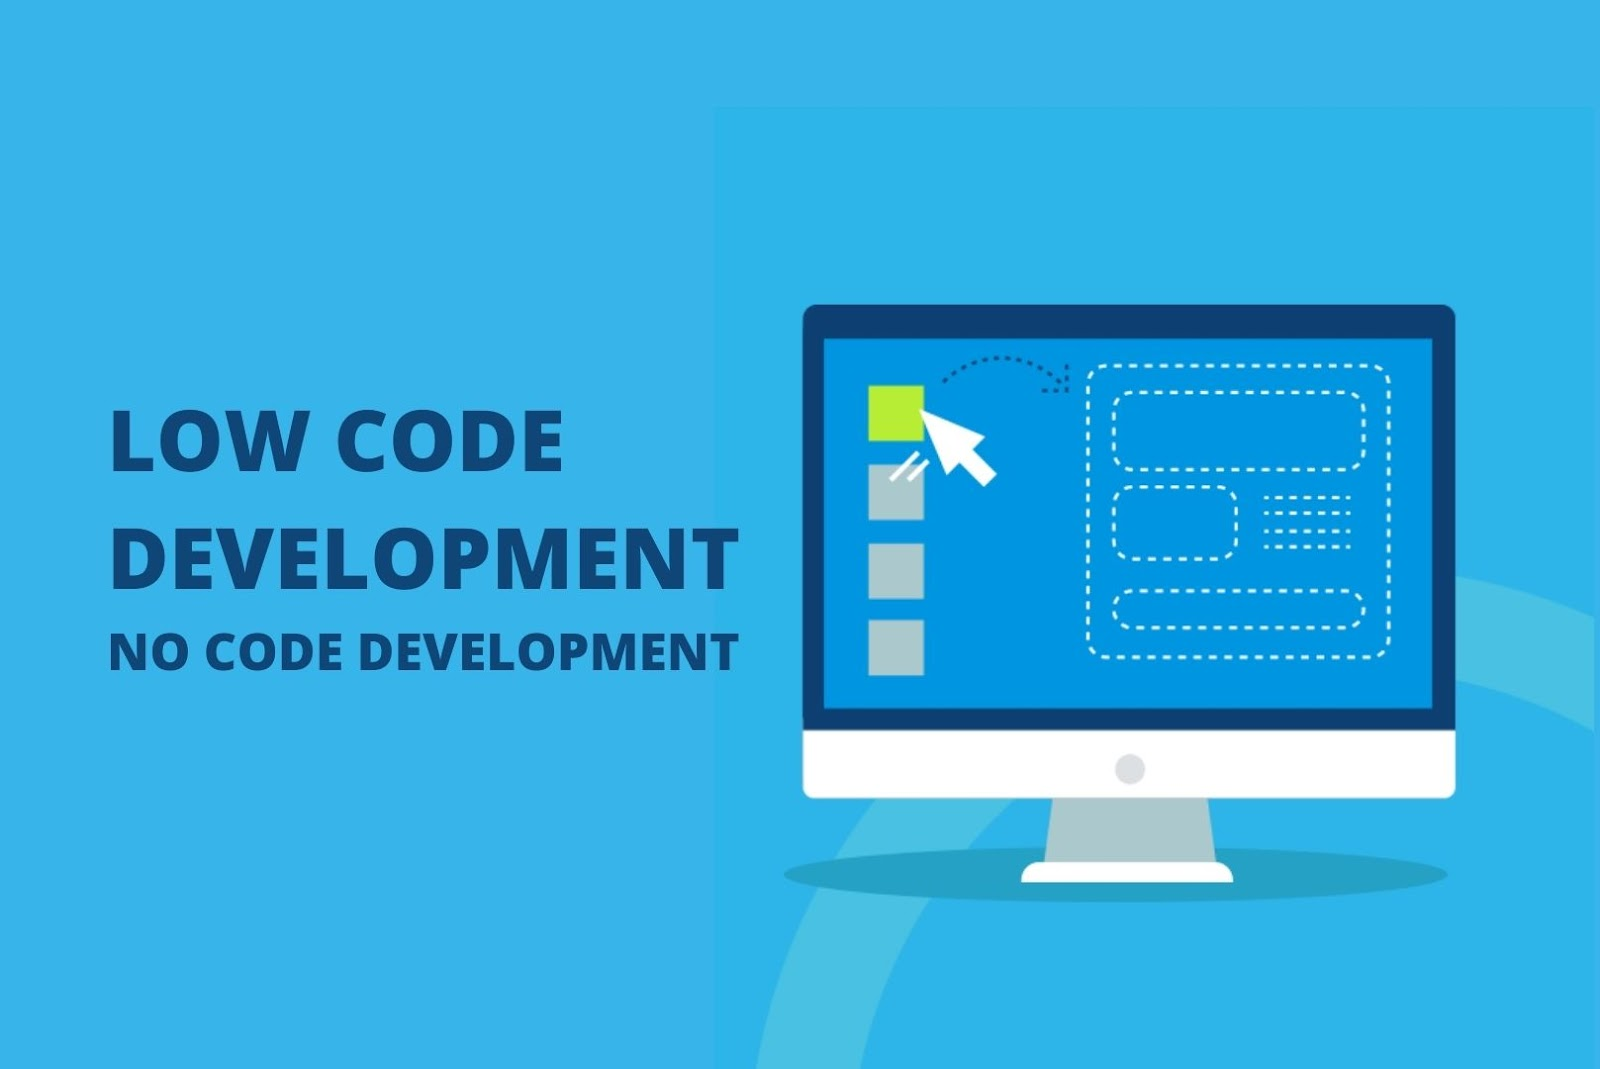 low code and no code development